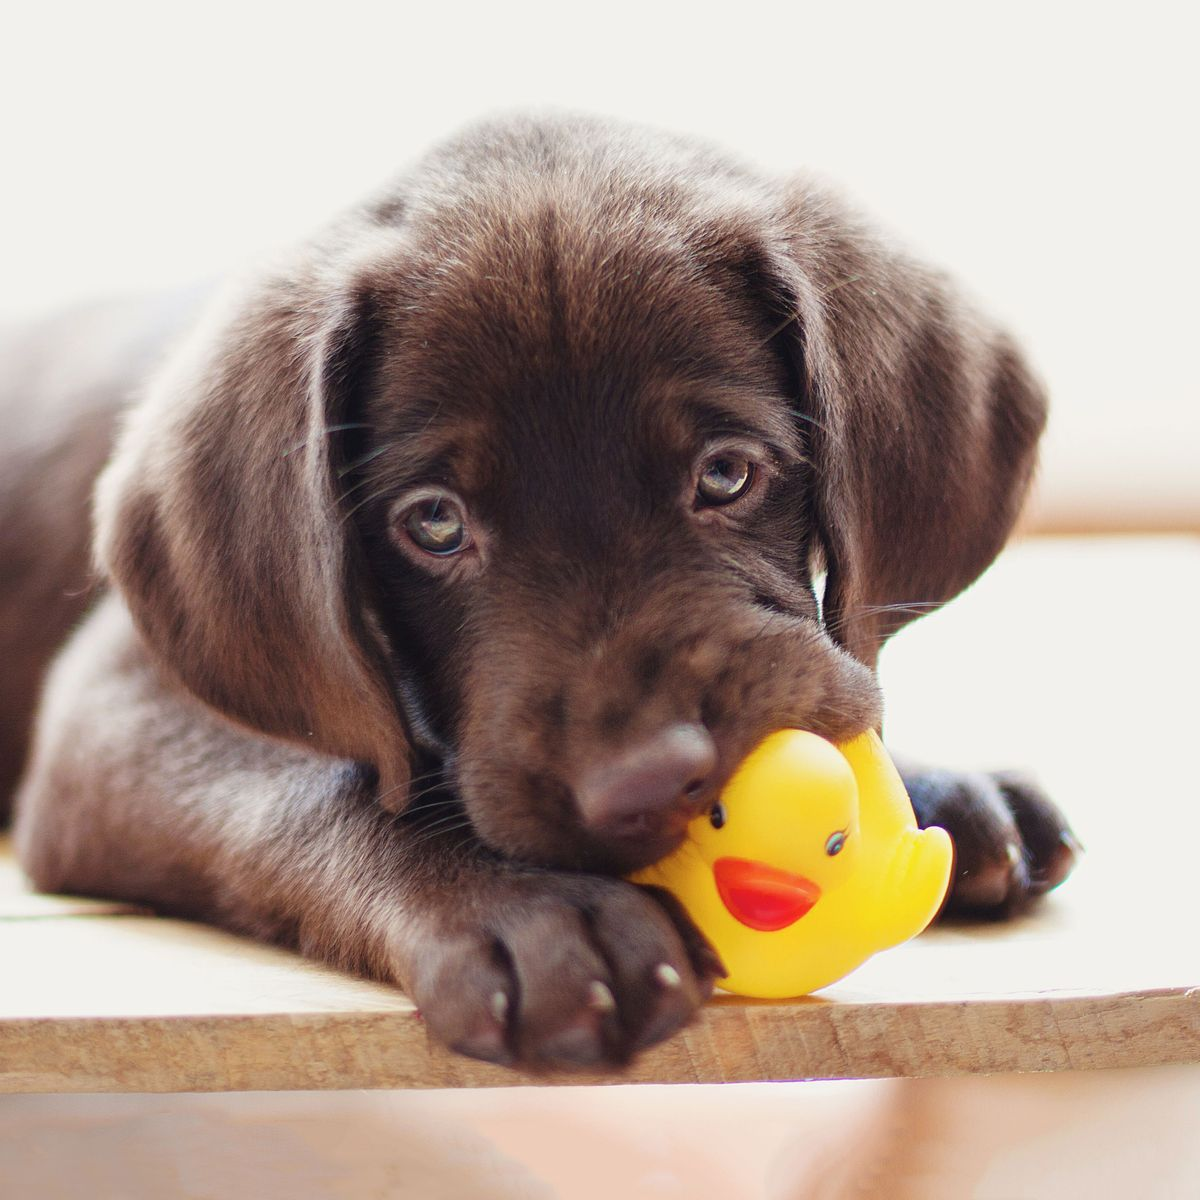 13 Best Things for Teething Puppies